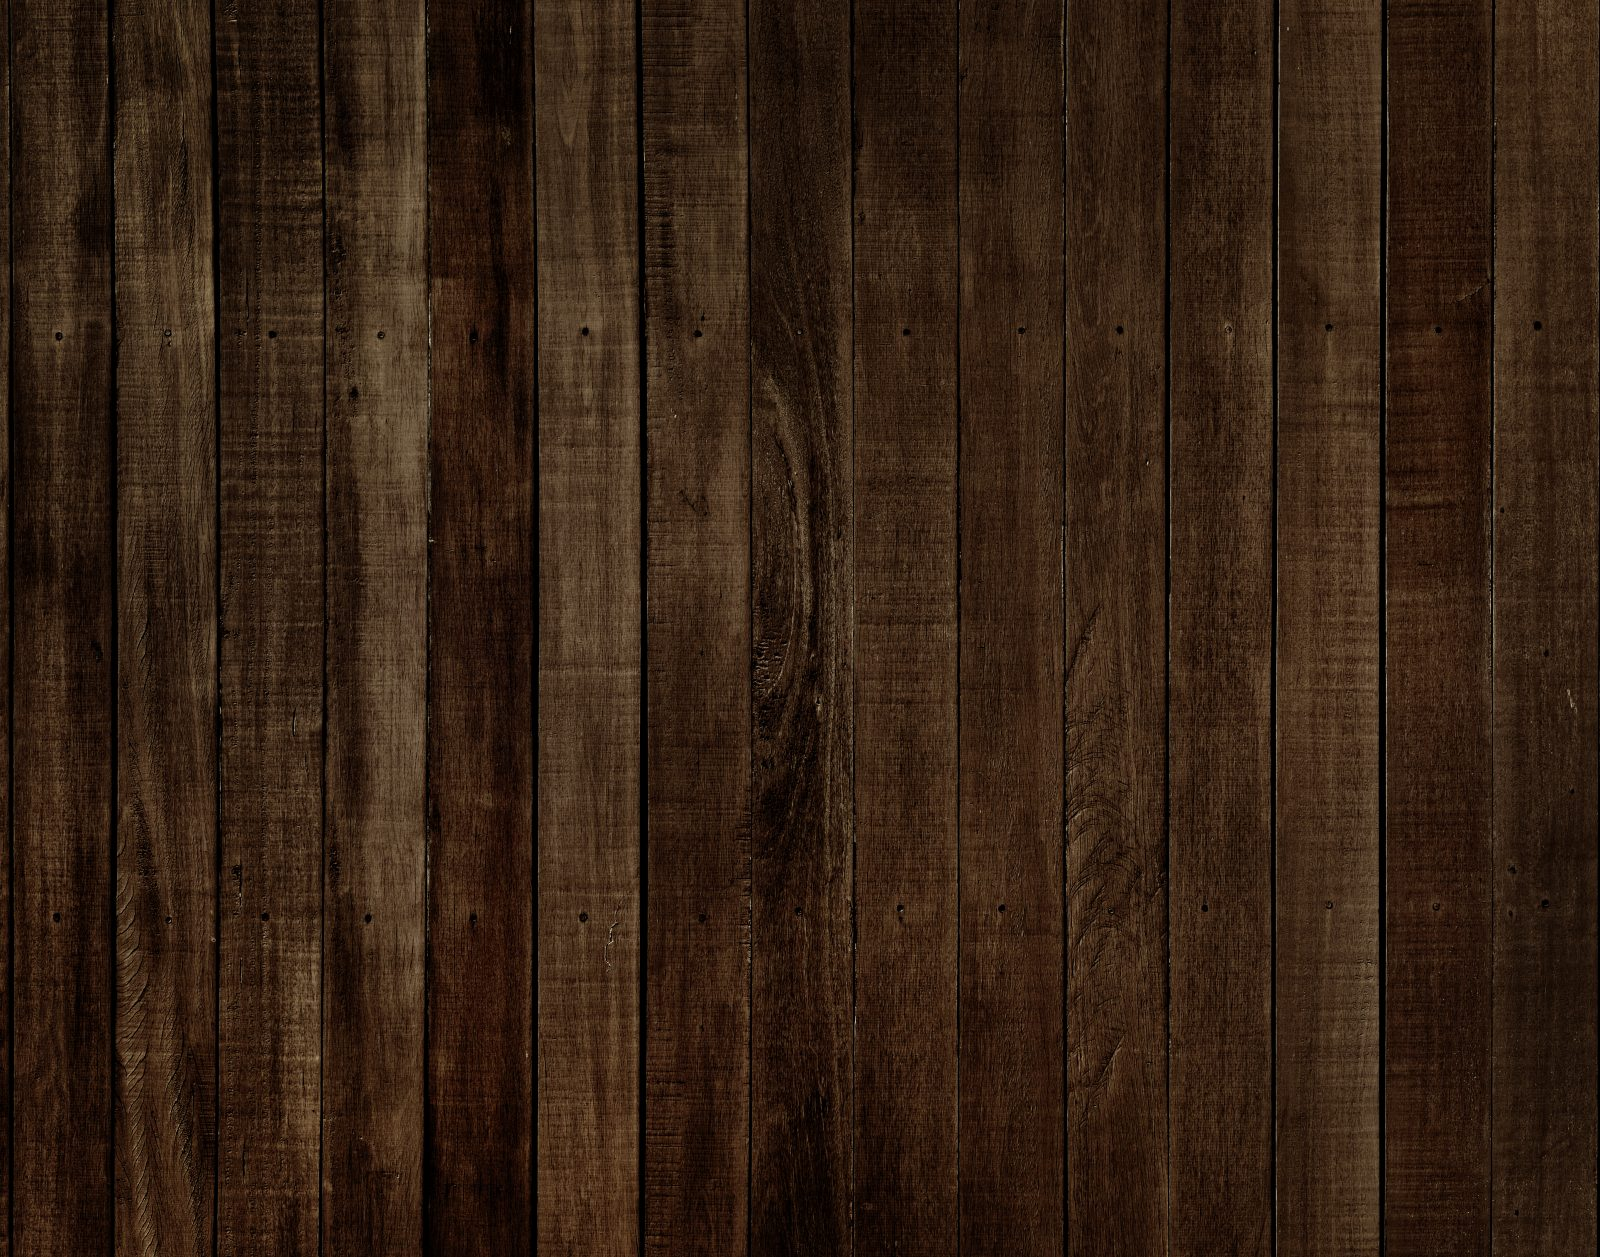 Wood Texture Free Stock Photos Life Of Pix